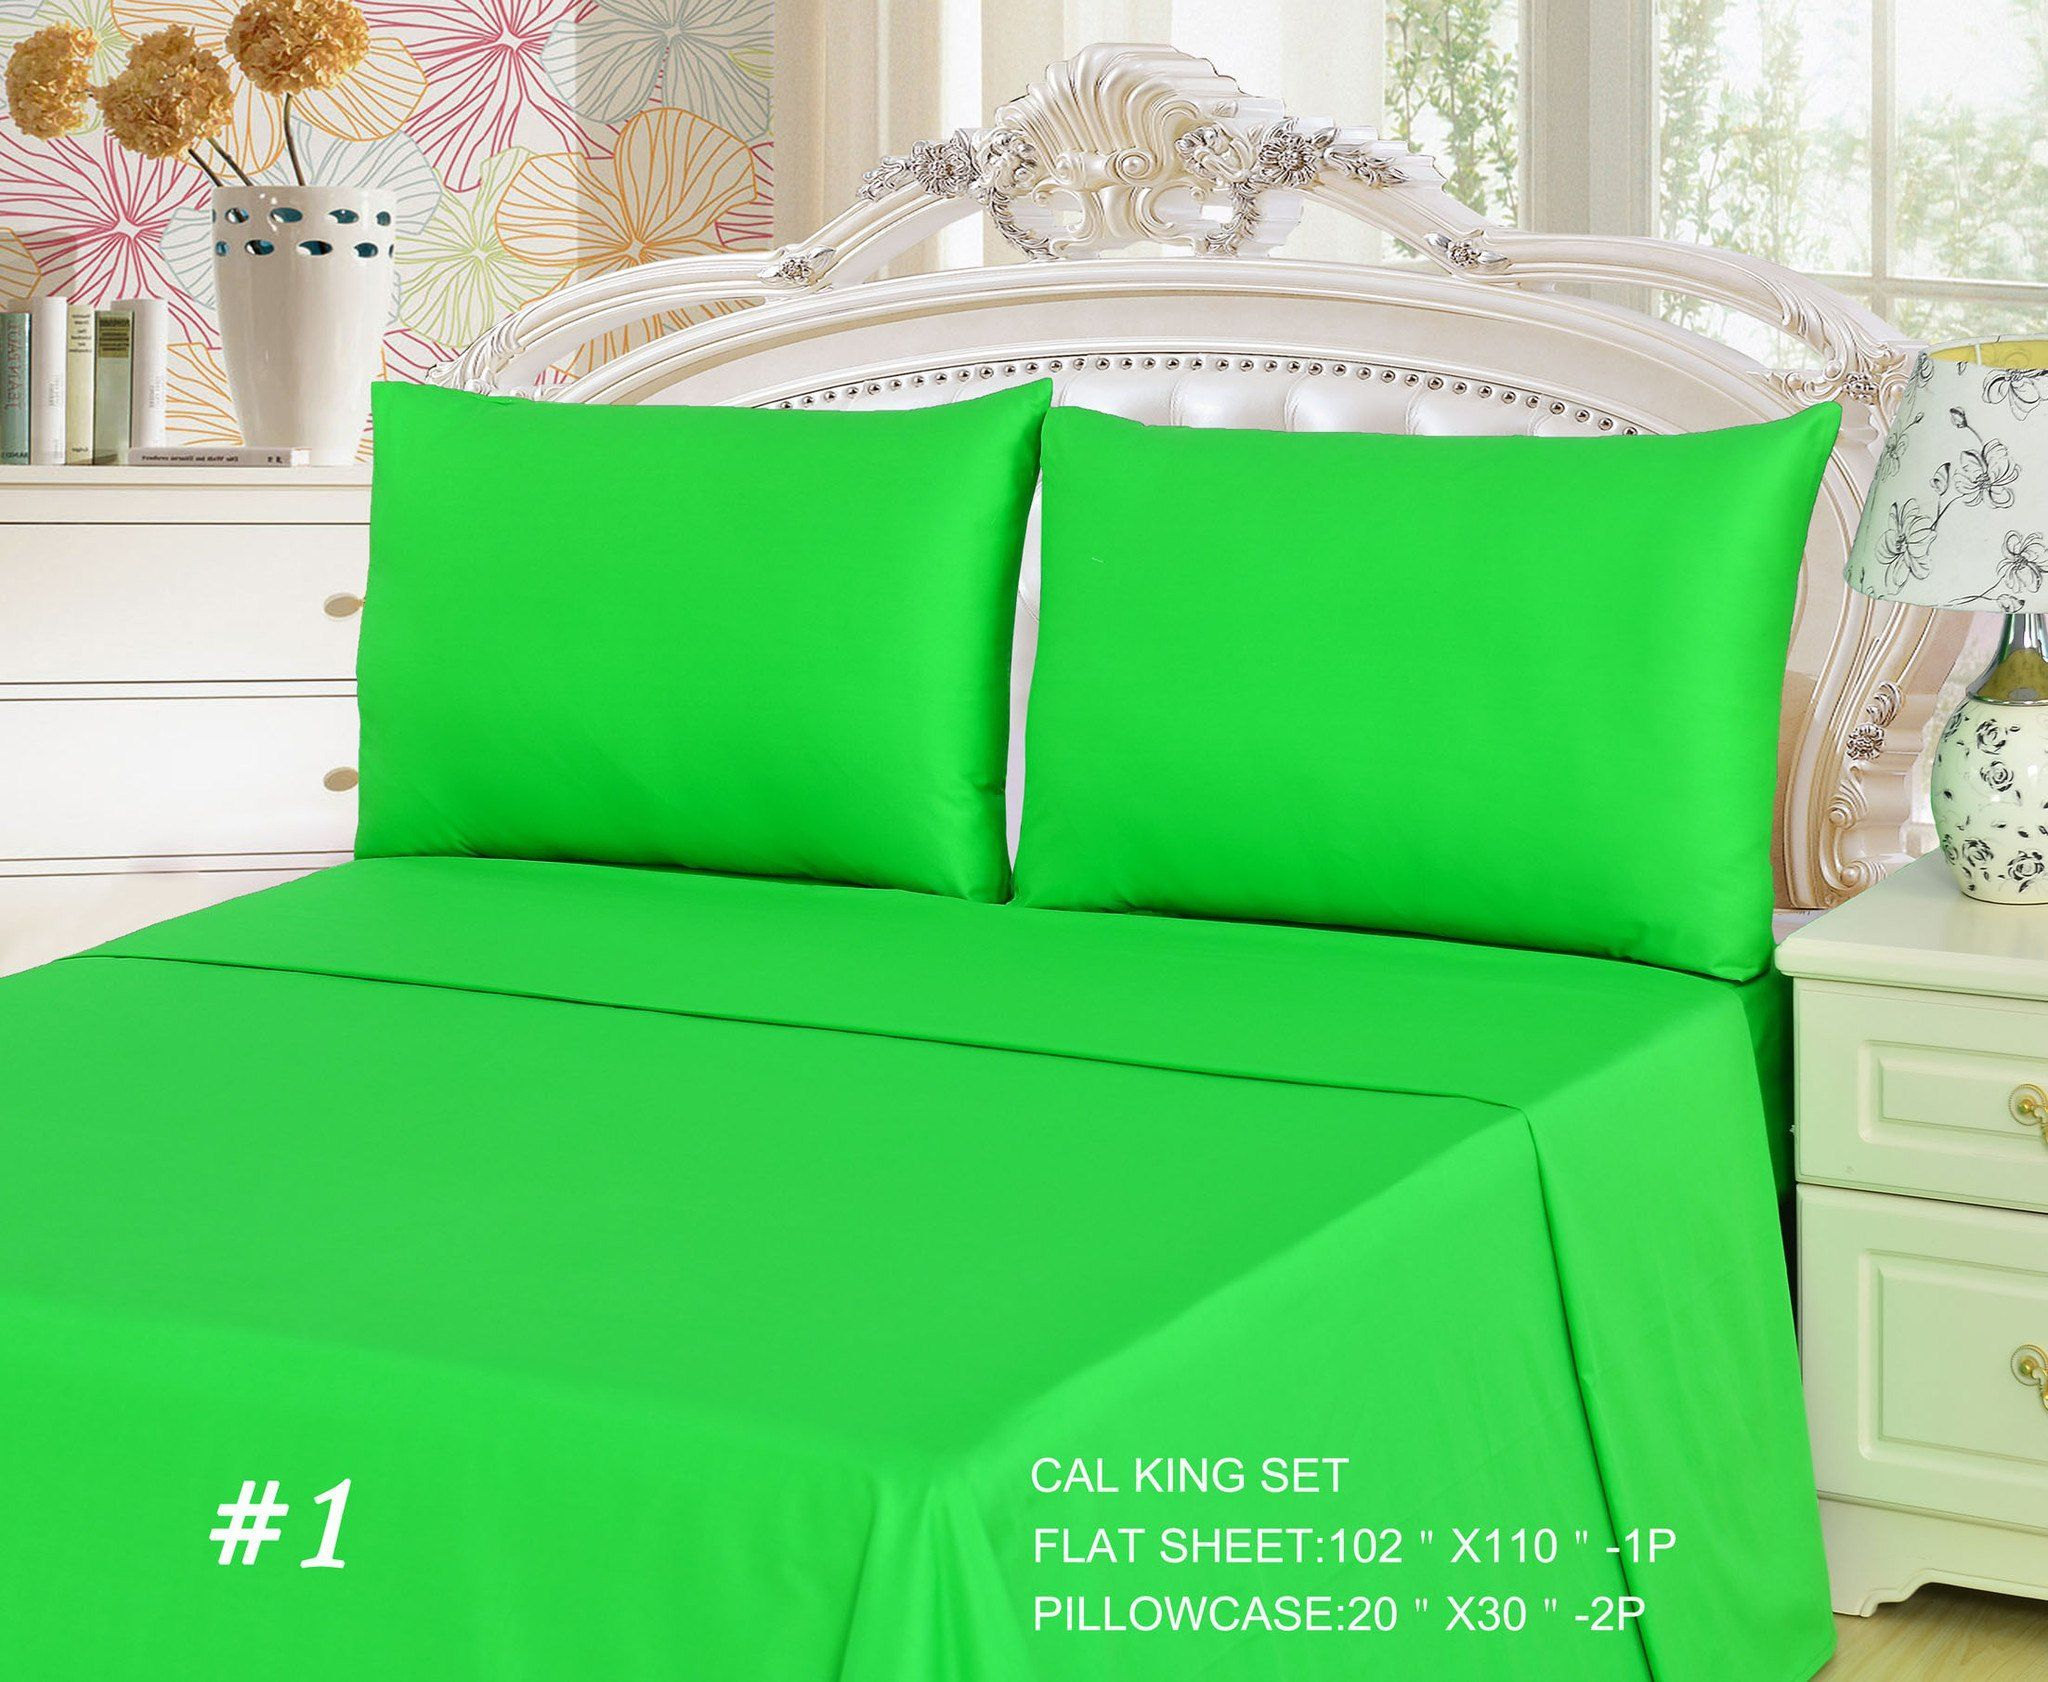 Charmant Tache 2 3 Piece Lime Green Bed Sheet (Flat Sheet)